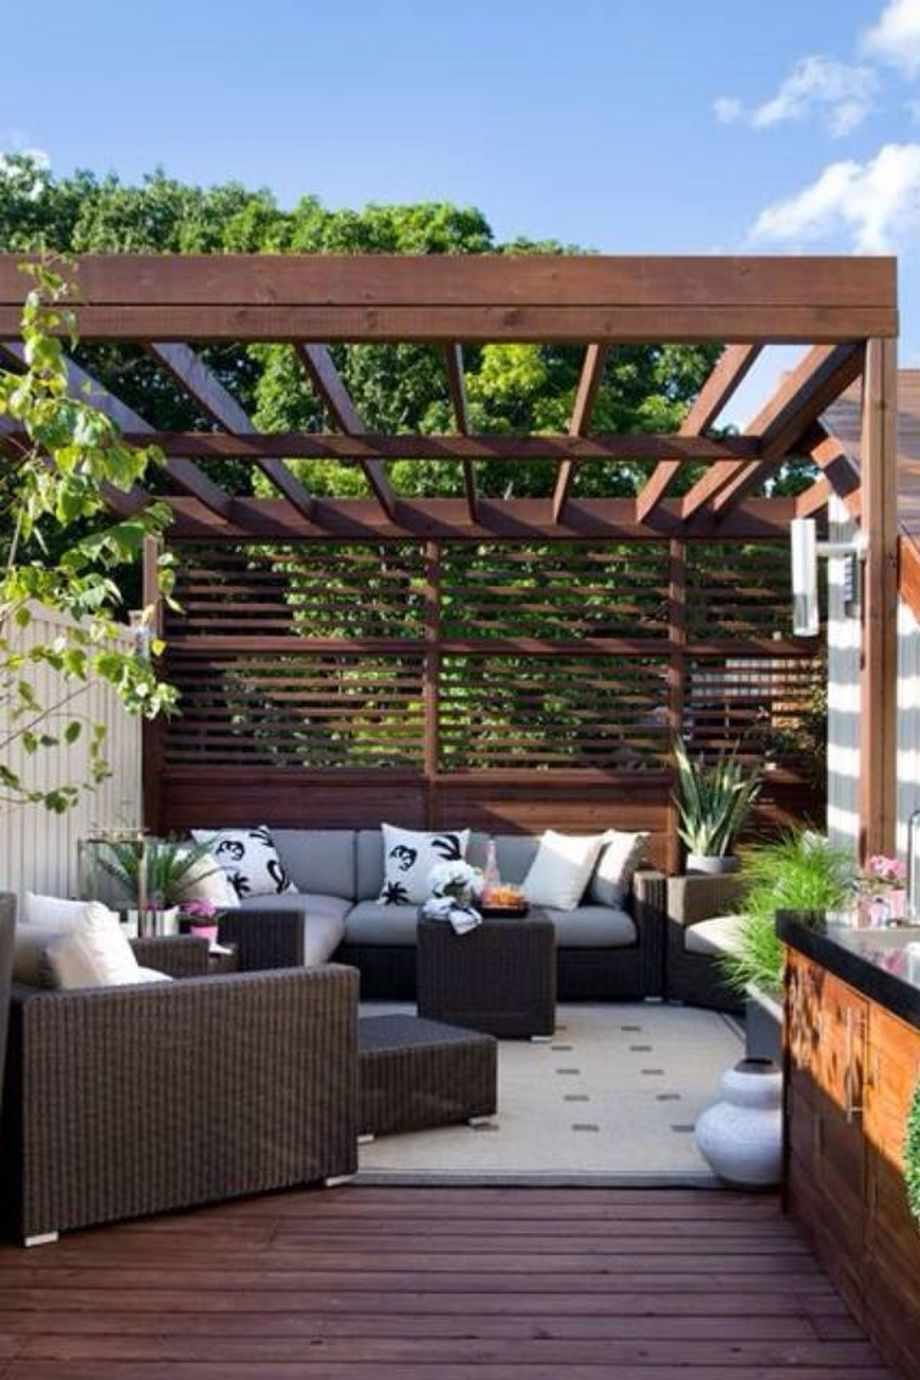 15 Compelling Contemporary Exterior Designs Of Luxury Homes You Ll Love: Small Backyard Landscaping, Patio, Backyard